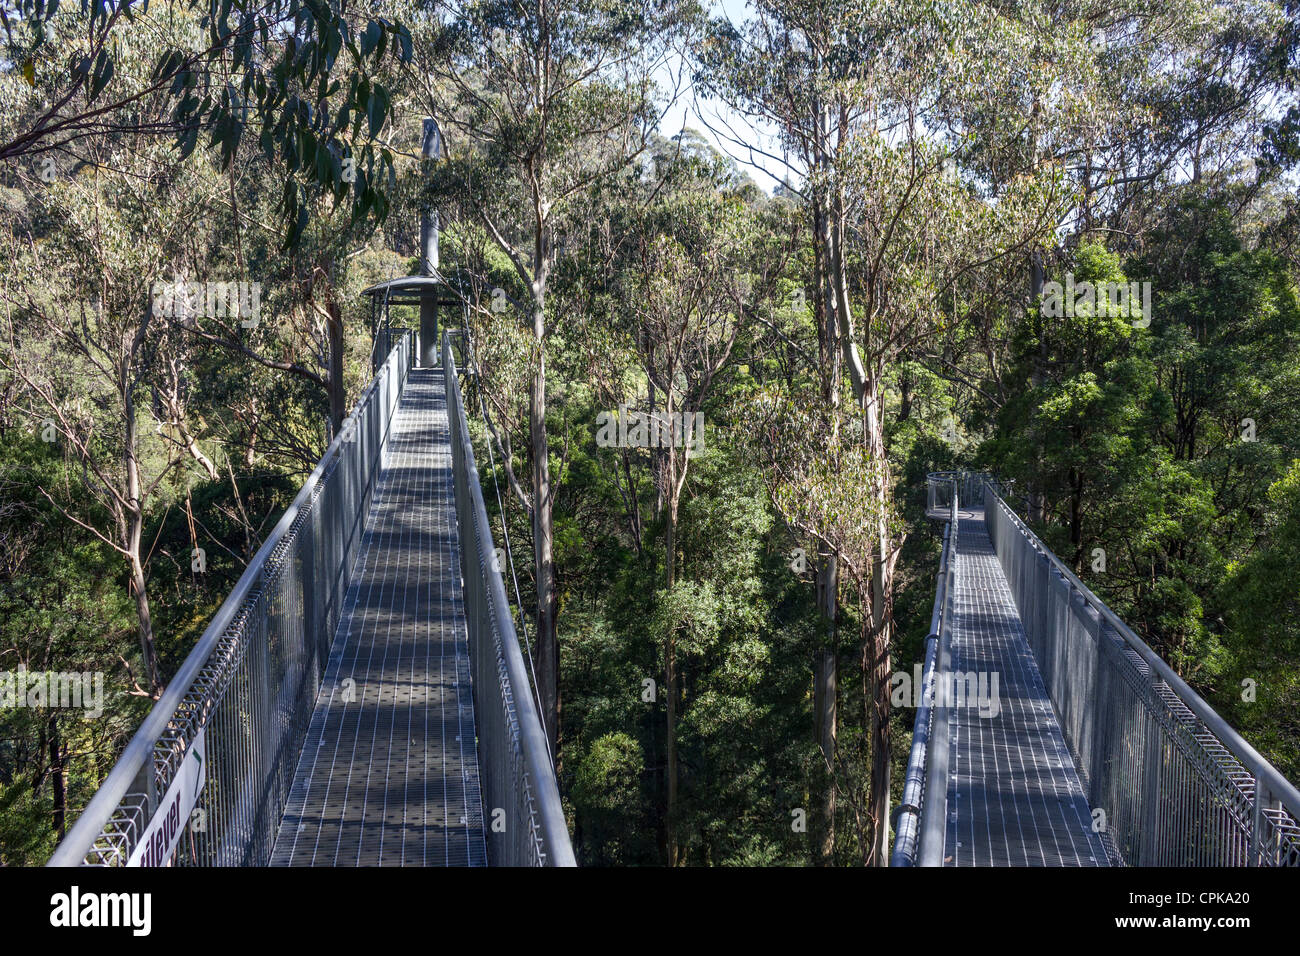 Otway Fly Treetop Walk, Great Otway National Park, Victoria, Australie Photo Stock